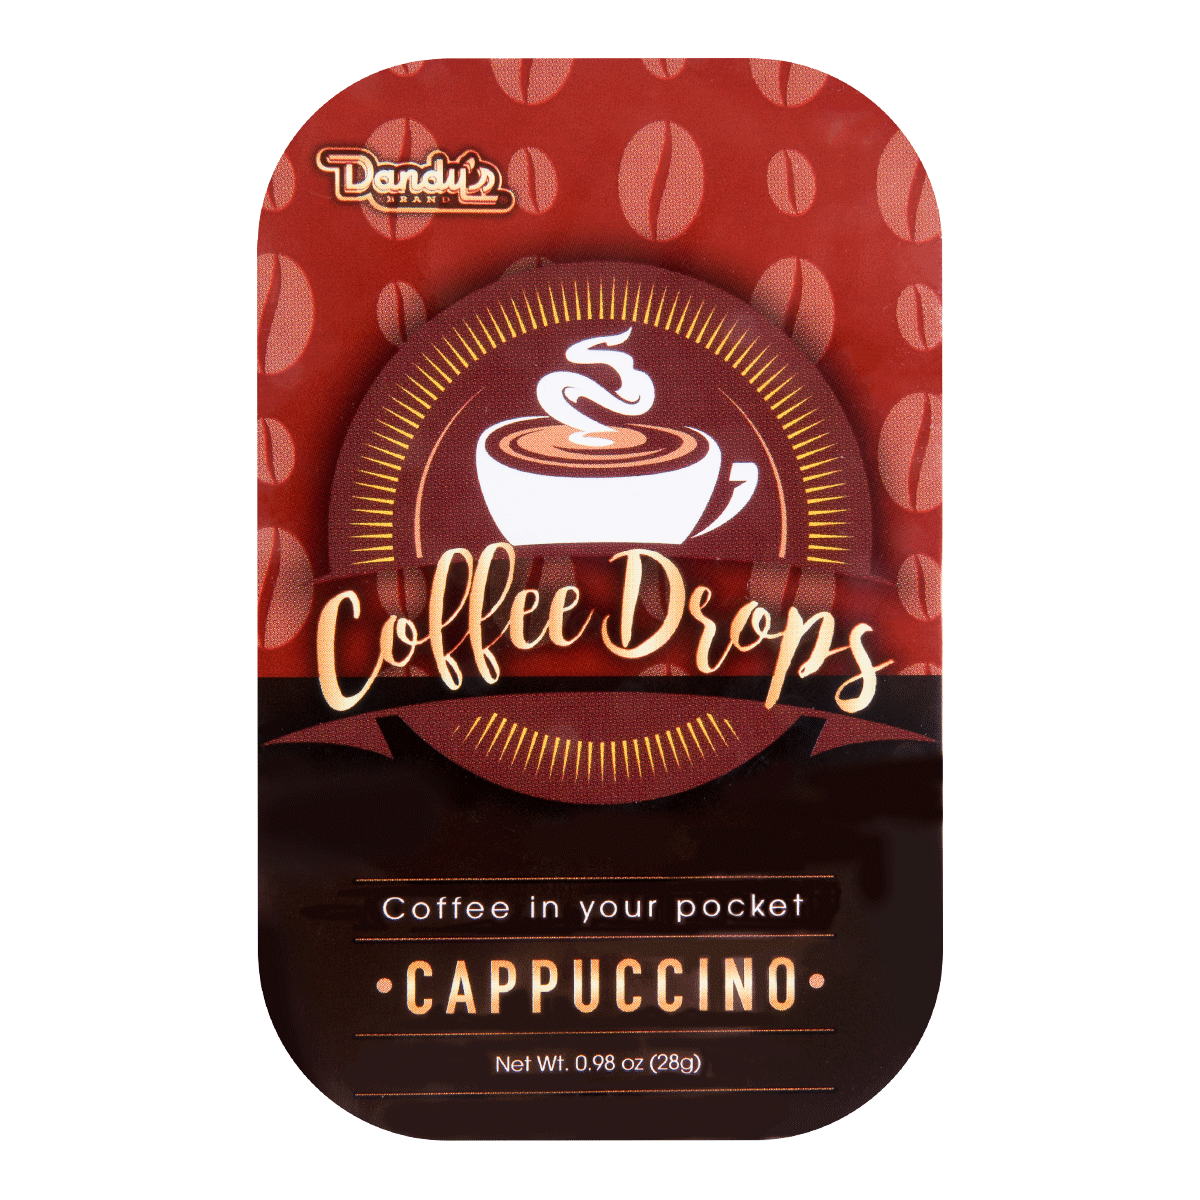 DANDY Coffee Drops-Cappuccino 28g